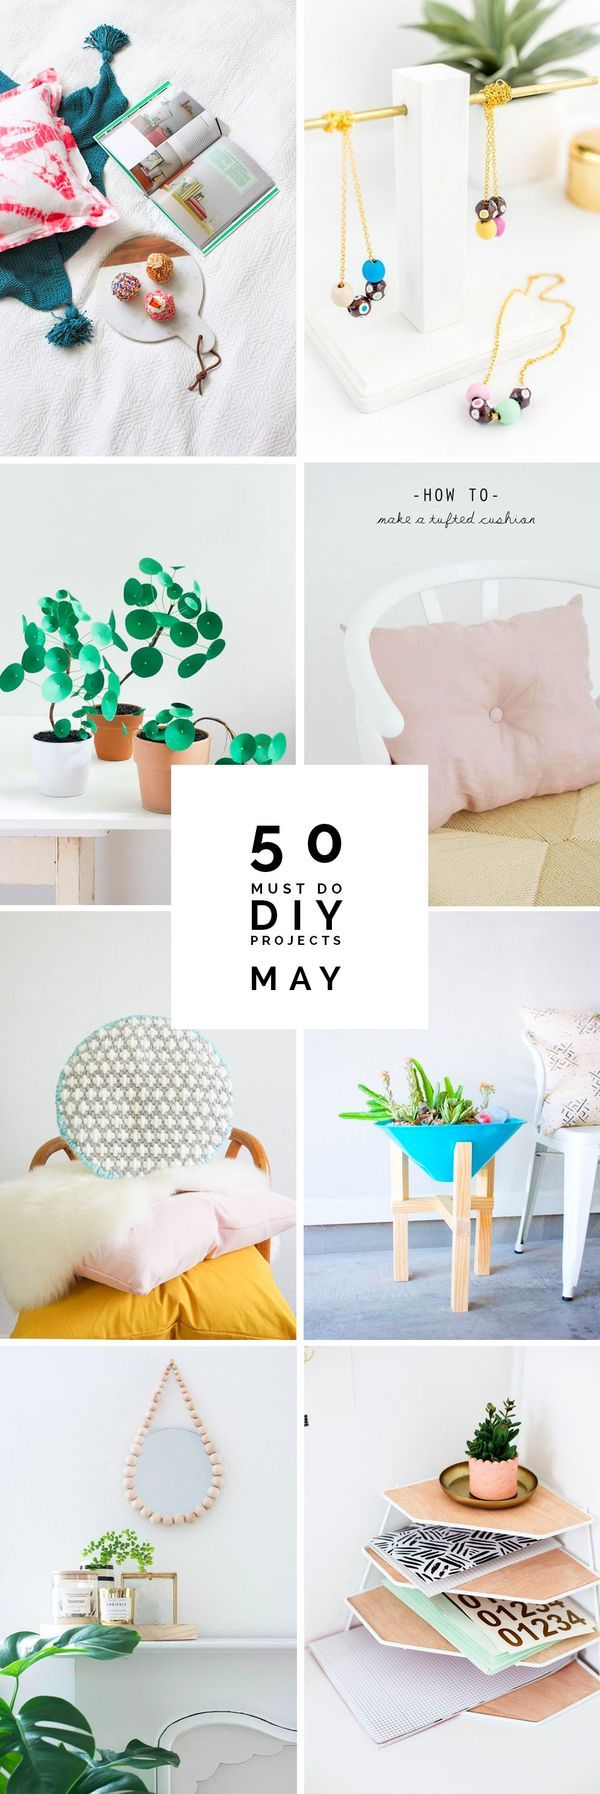 Ideas : 50 Must do DIY Projects | May